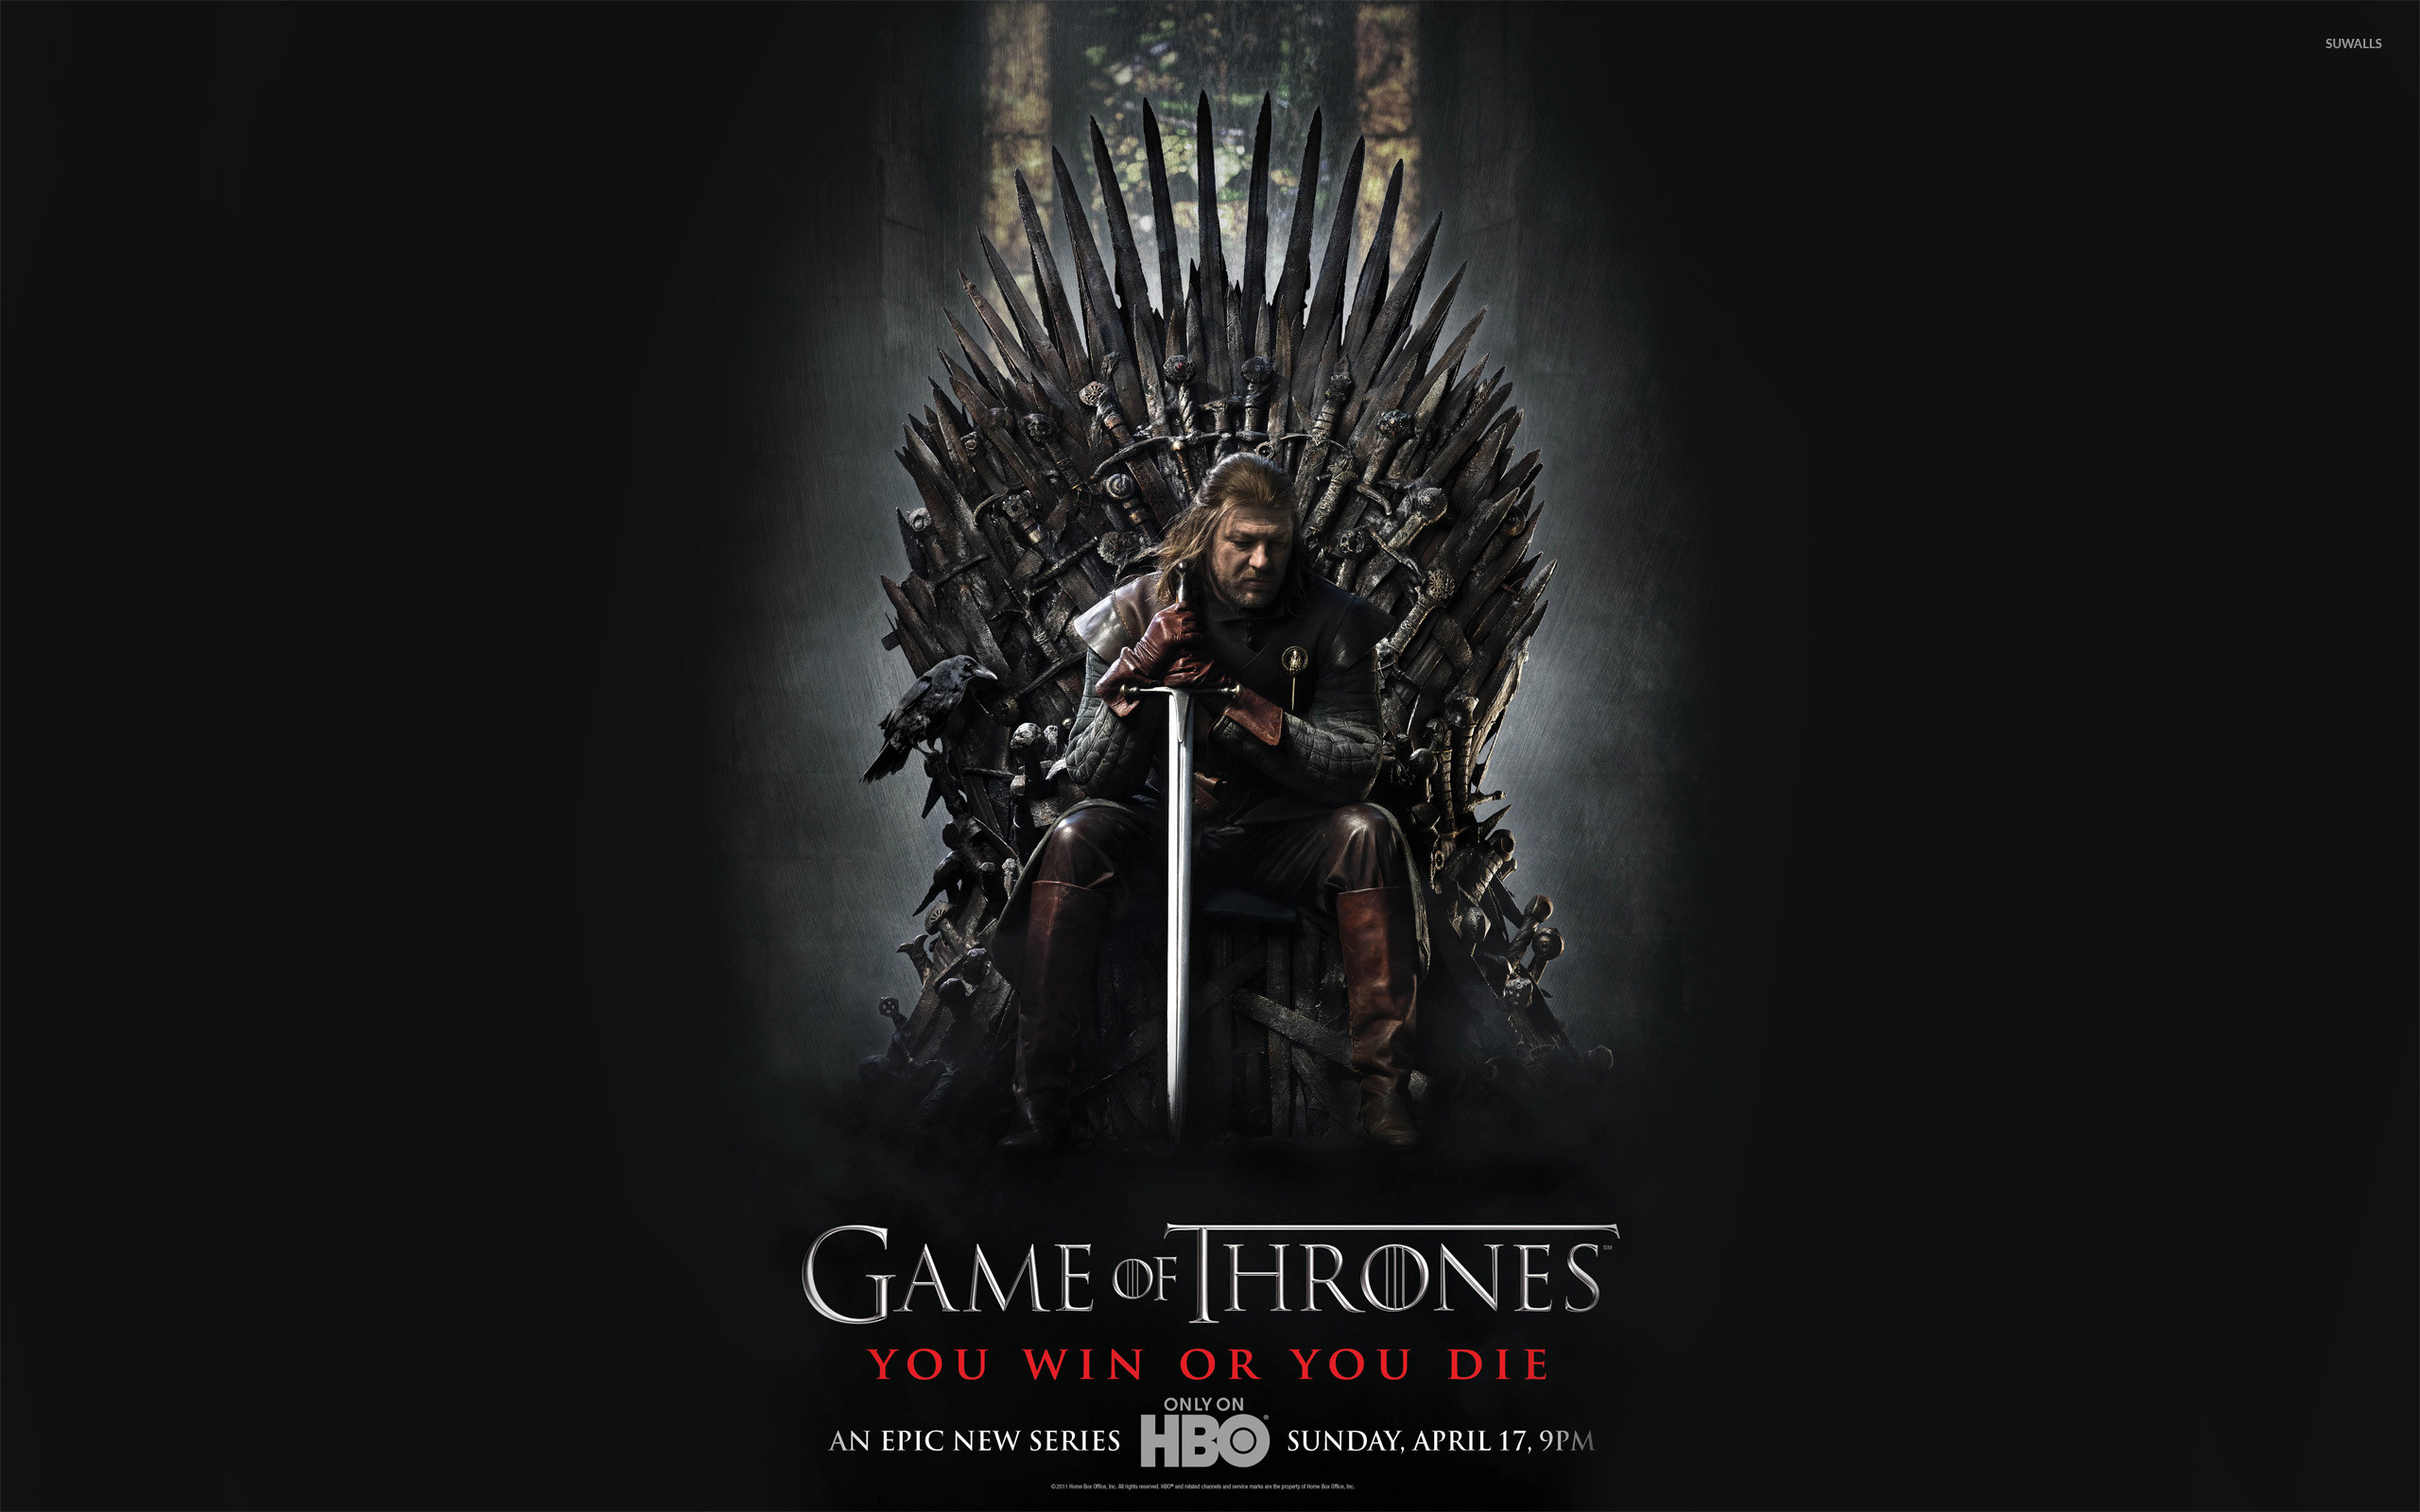 Hd Wallpapers Backgrounds For Game Of Thrones Free For: HBO Game Of Thrones Wallpaper ·① WallpaperTag